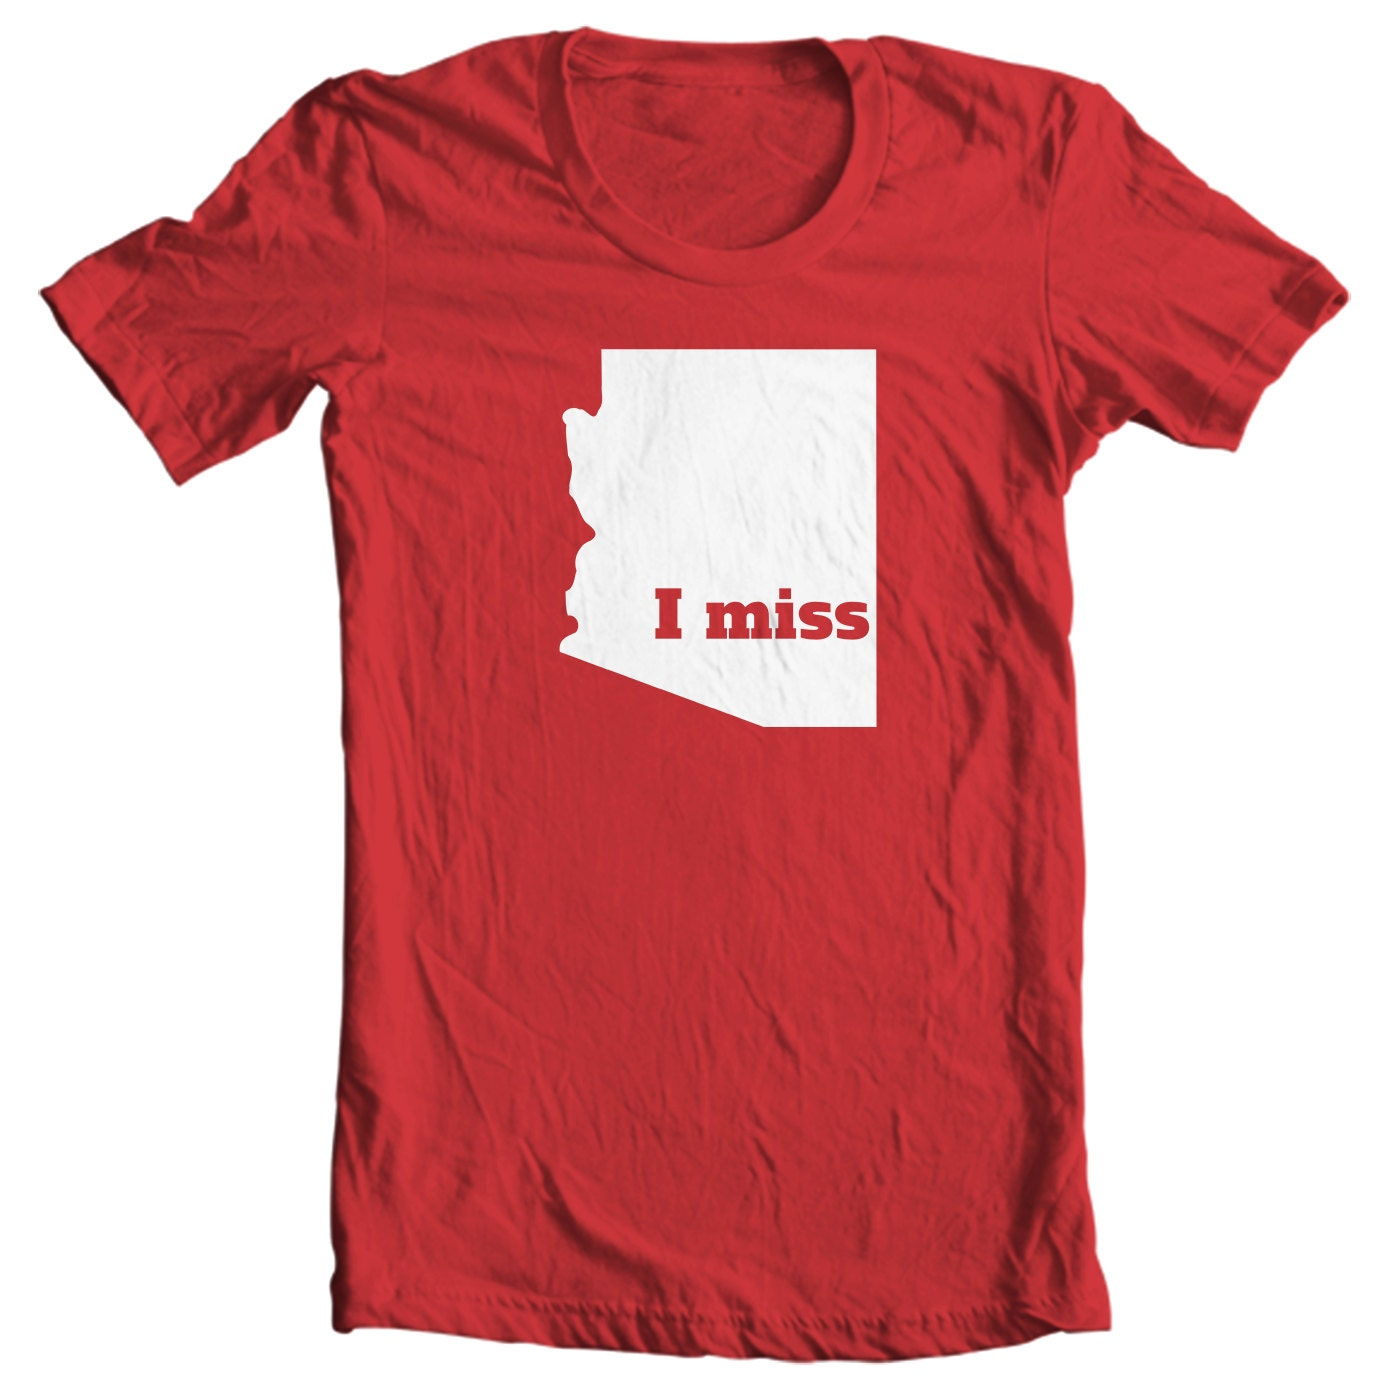 Arizona Kids T-shirt - I Miss Arizona - My State Kids Arizona T-shirt